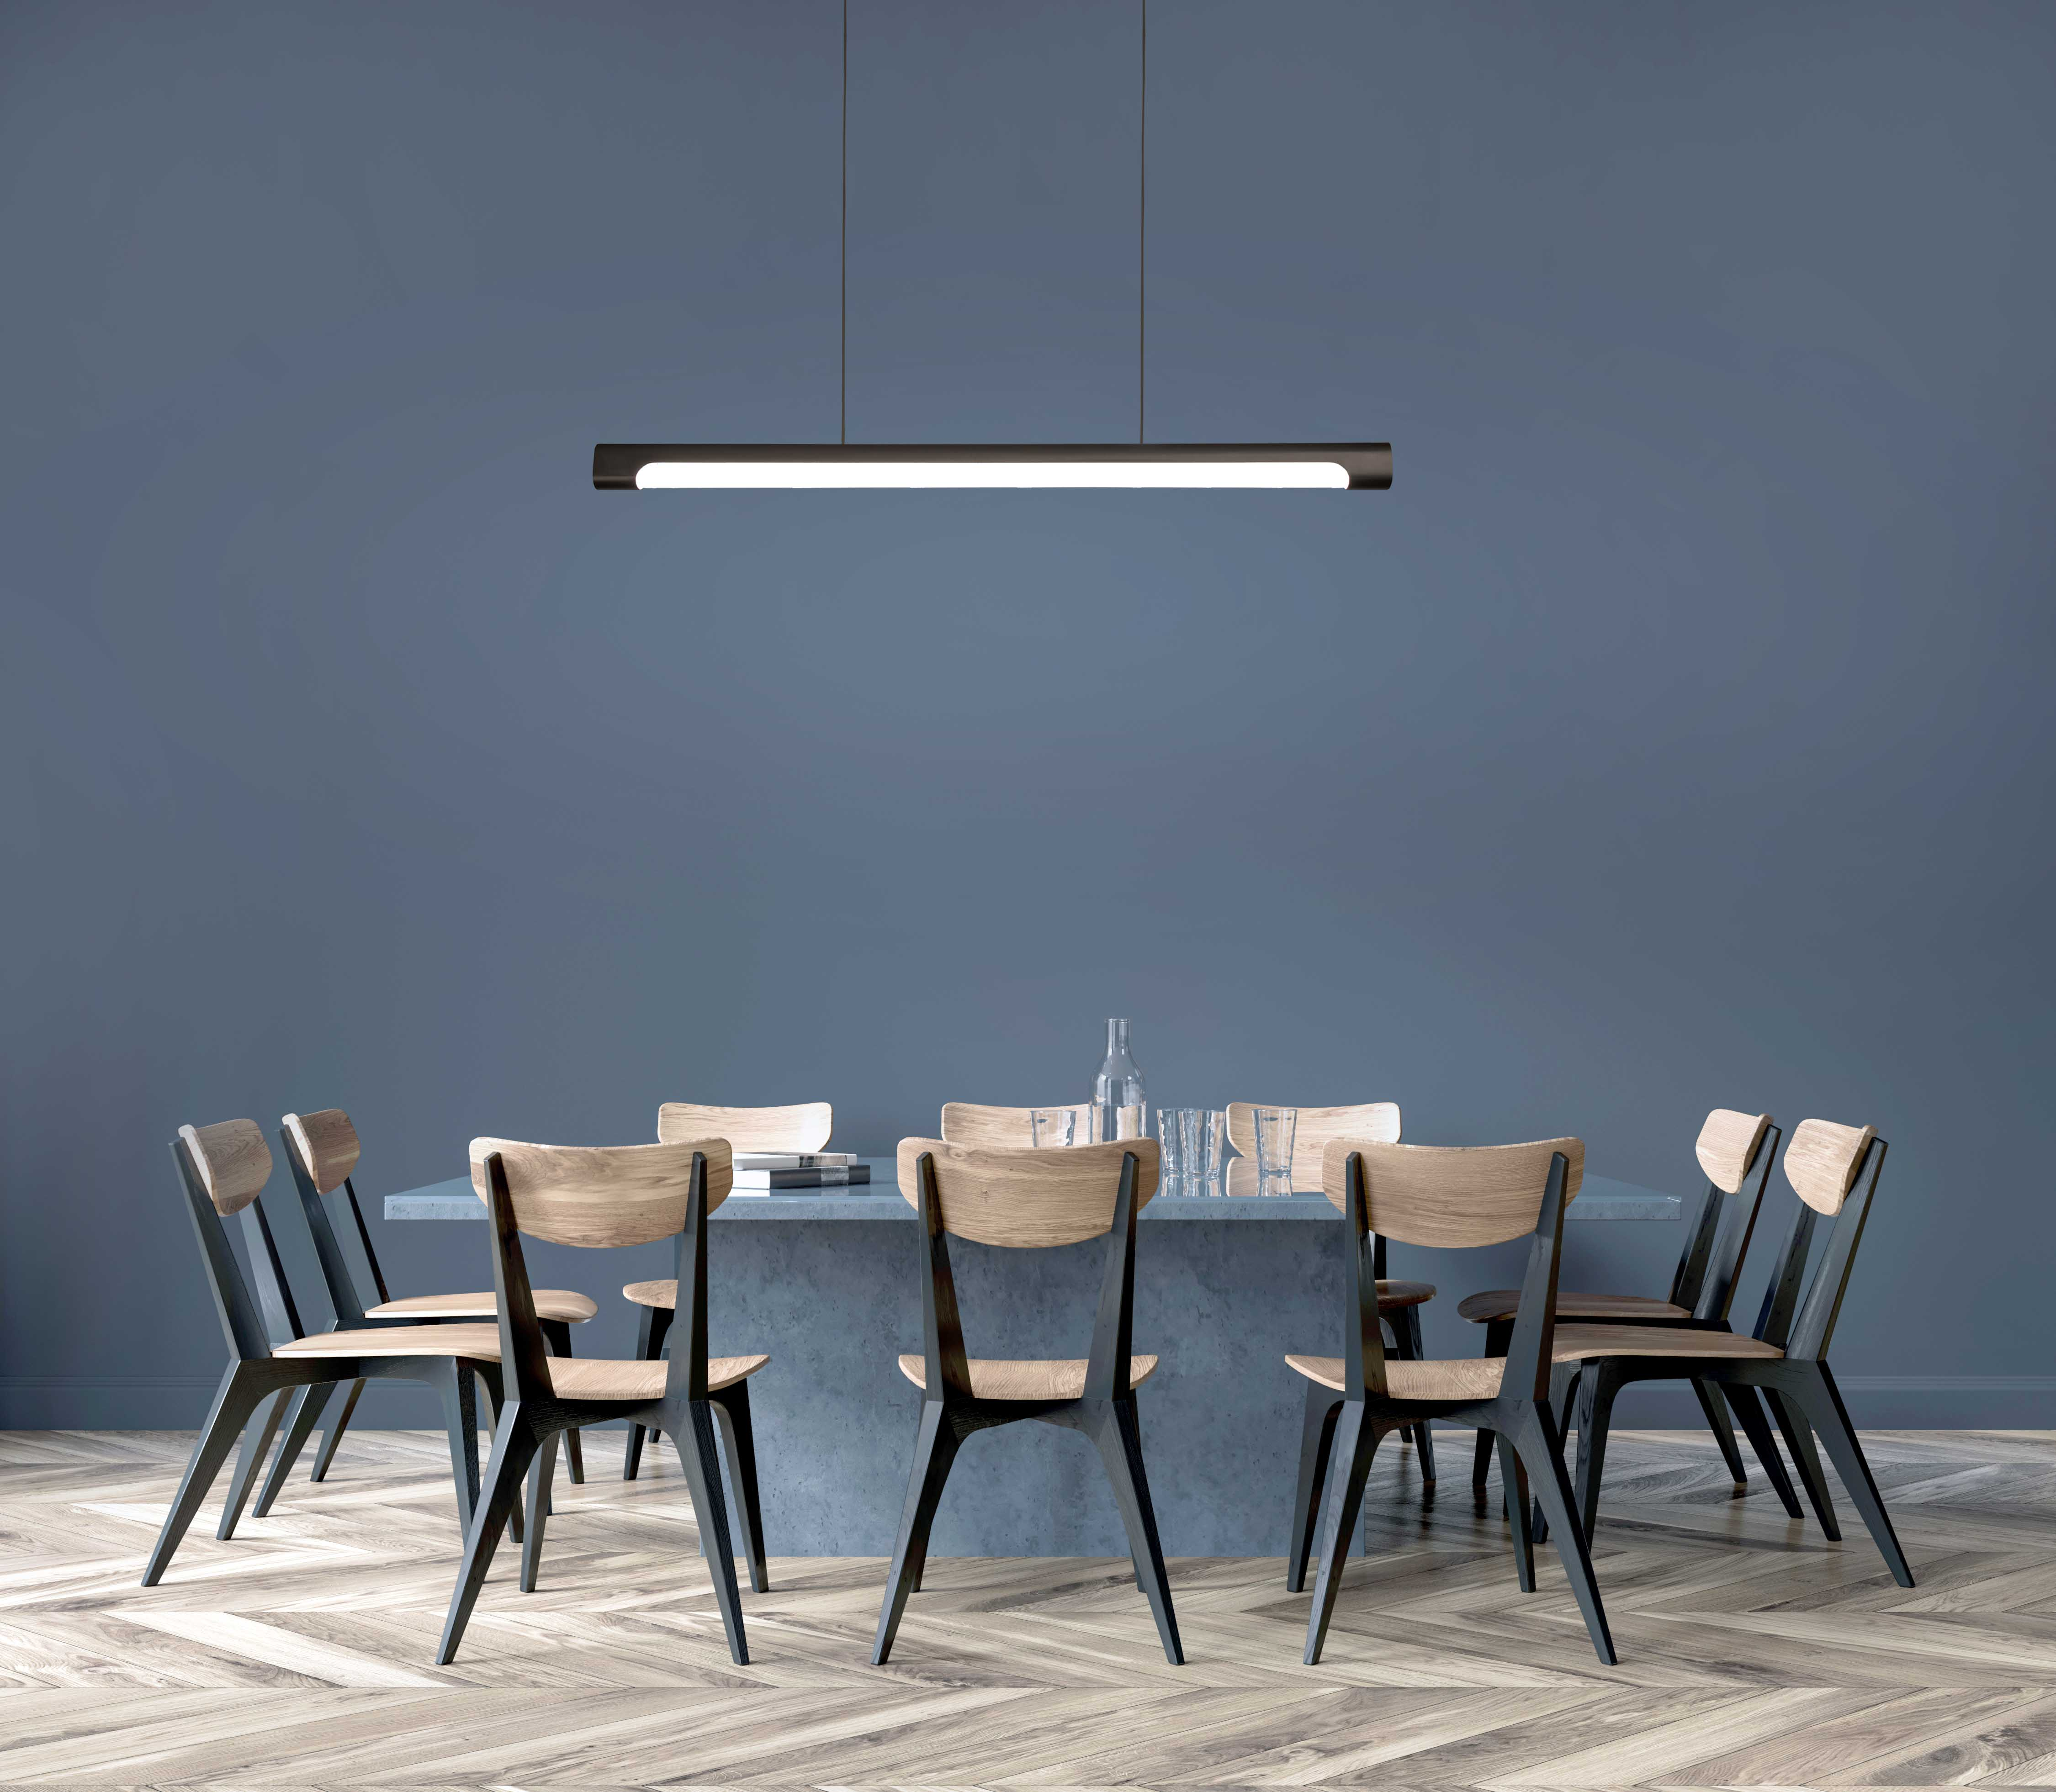 Nacelle decorative linear pendant with organic lines and high-design